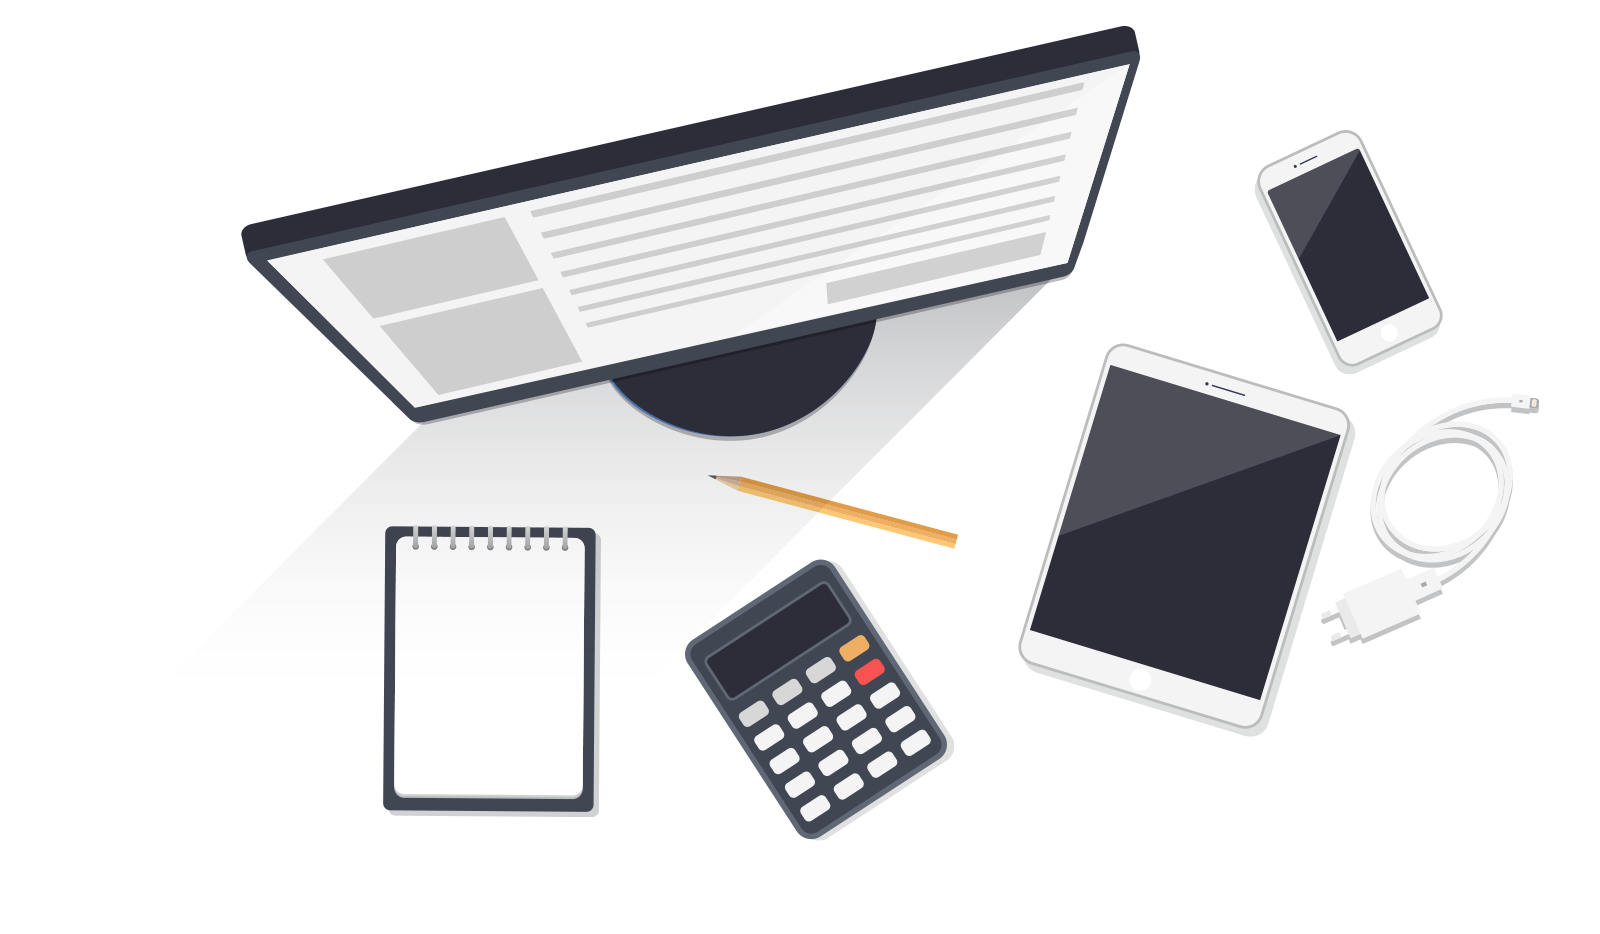 Desktop computer, ipad, smartphone, notepad & calculator